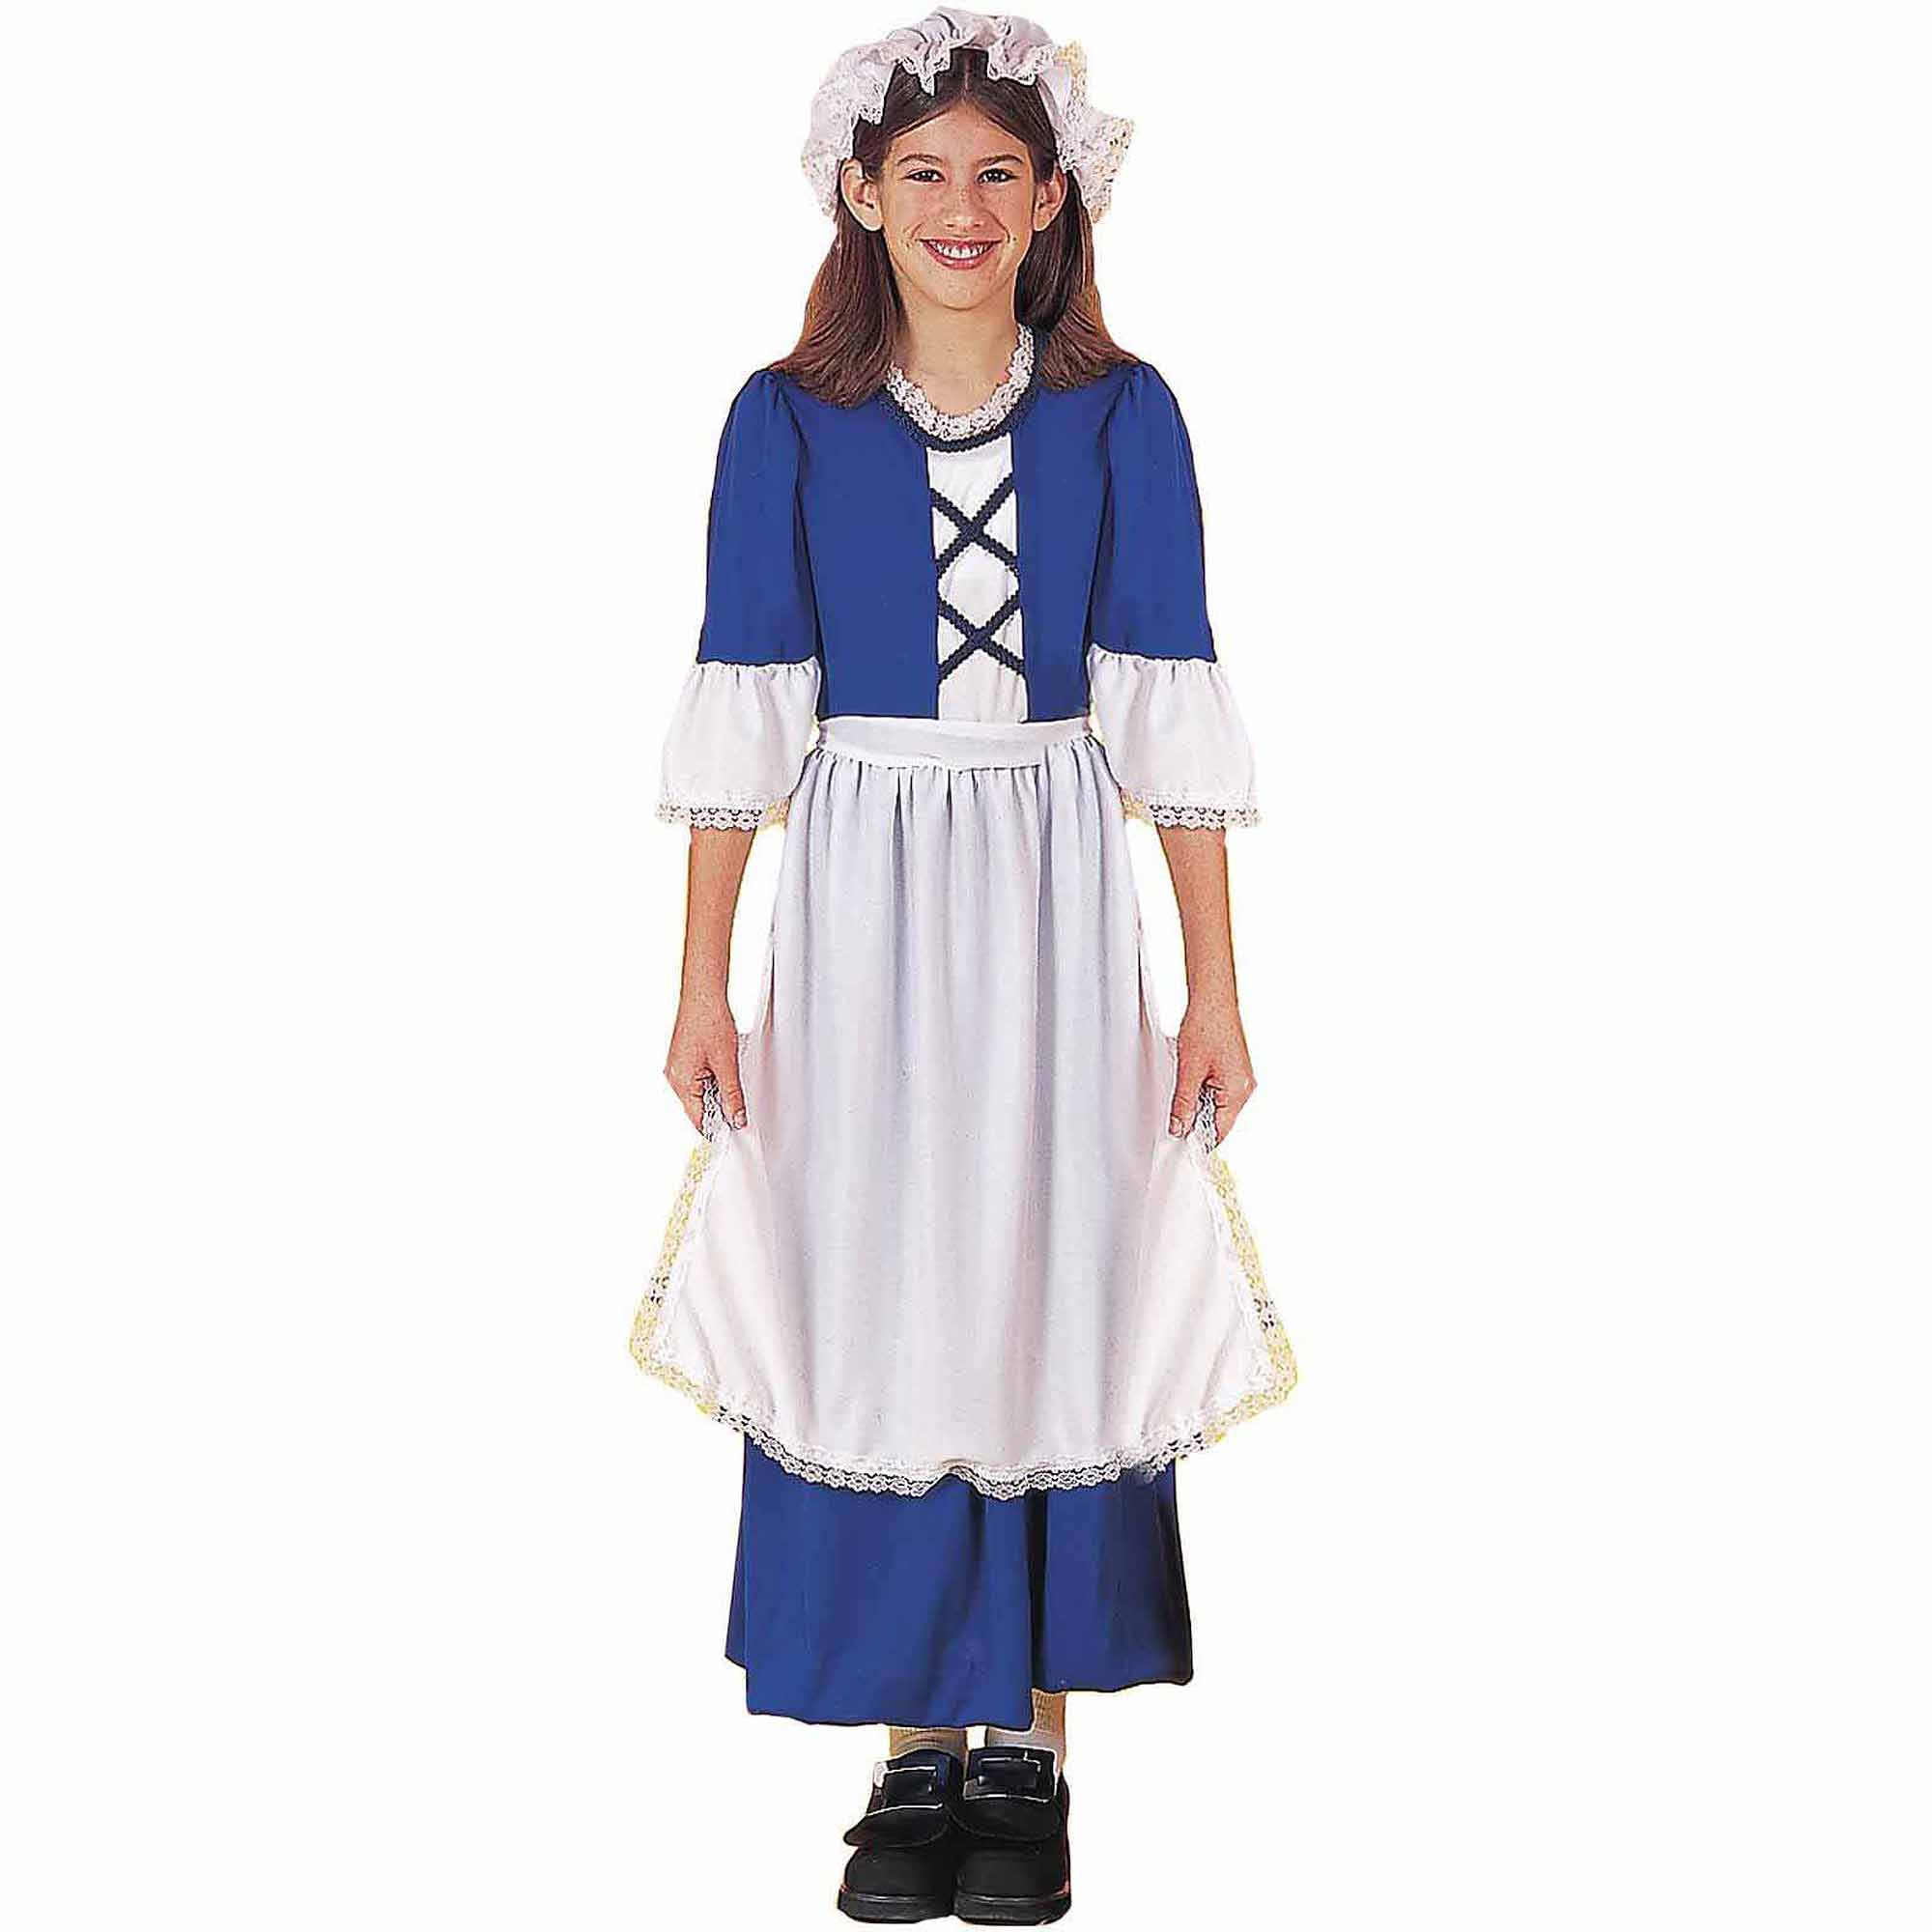 sc 1 st  Walmart & Little Colonial Miss Child Halloween Costume - Walmart.com